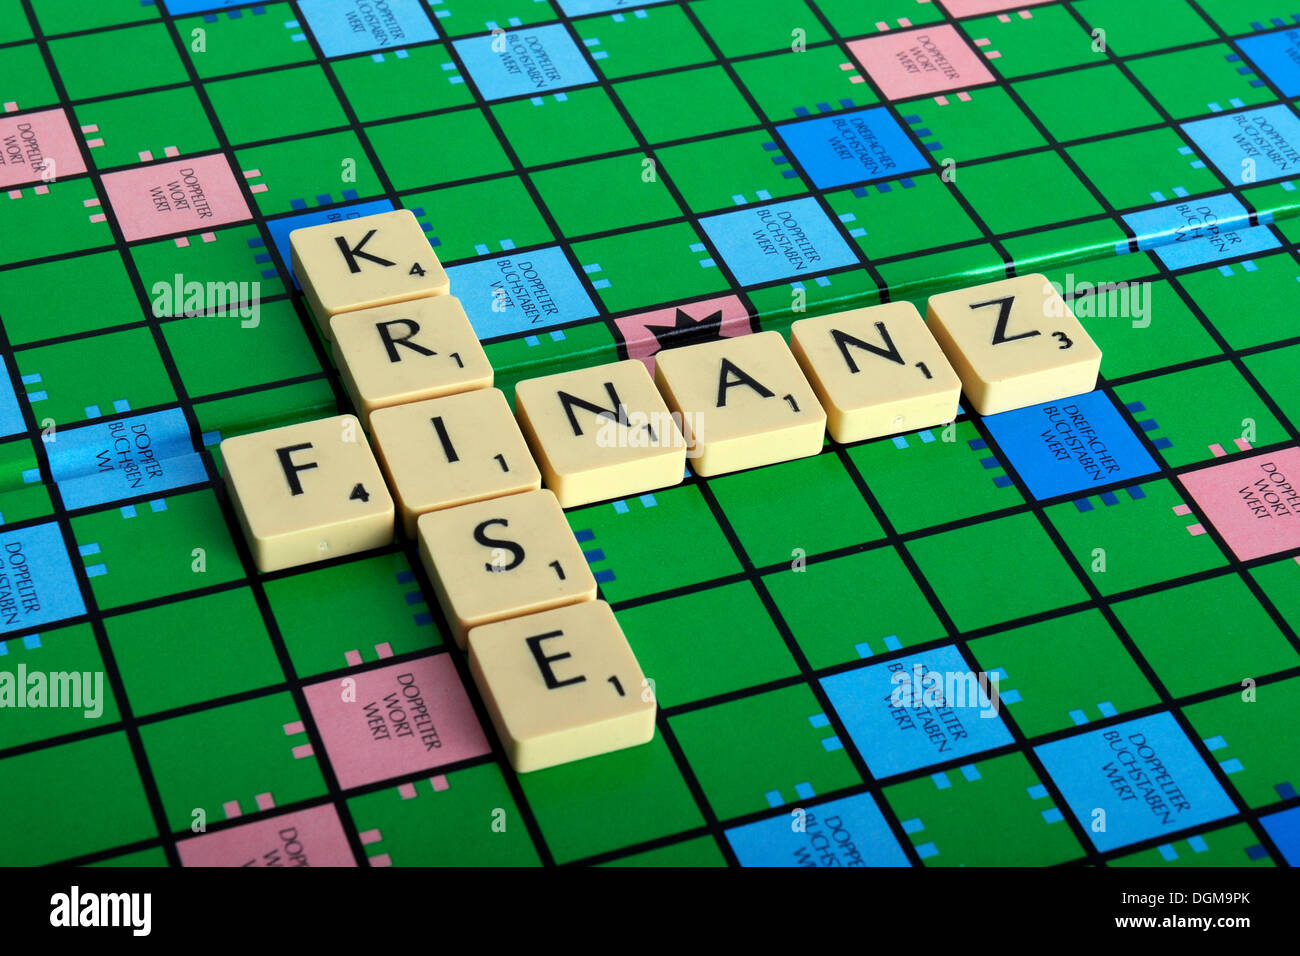 Scrabble letters forming the words Finanz and Krise, German for financial crisis - Stock Image